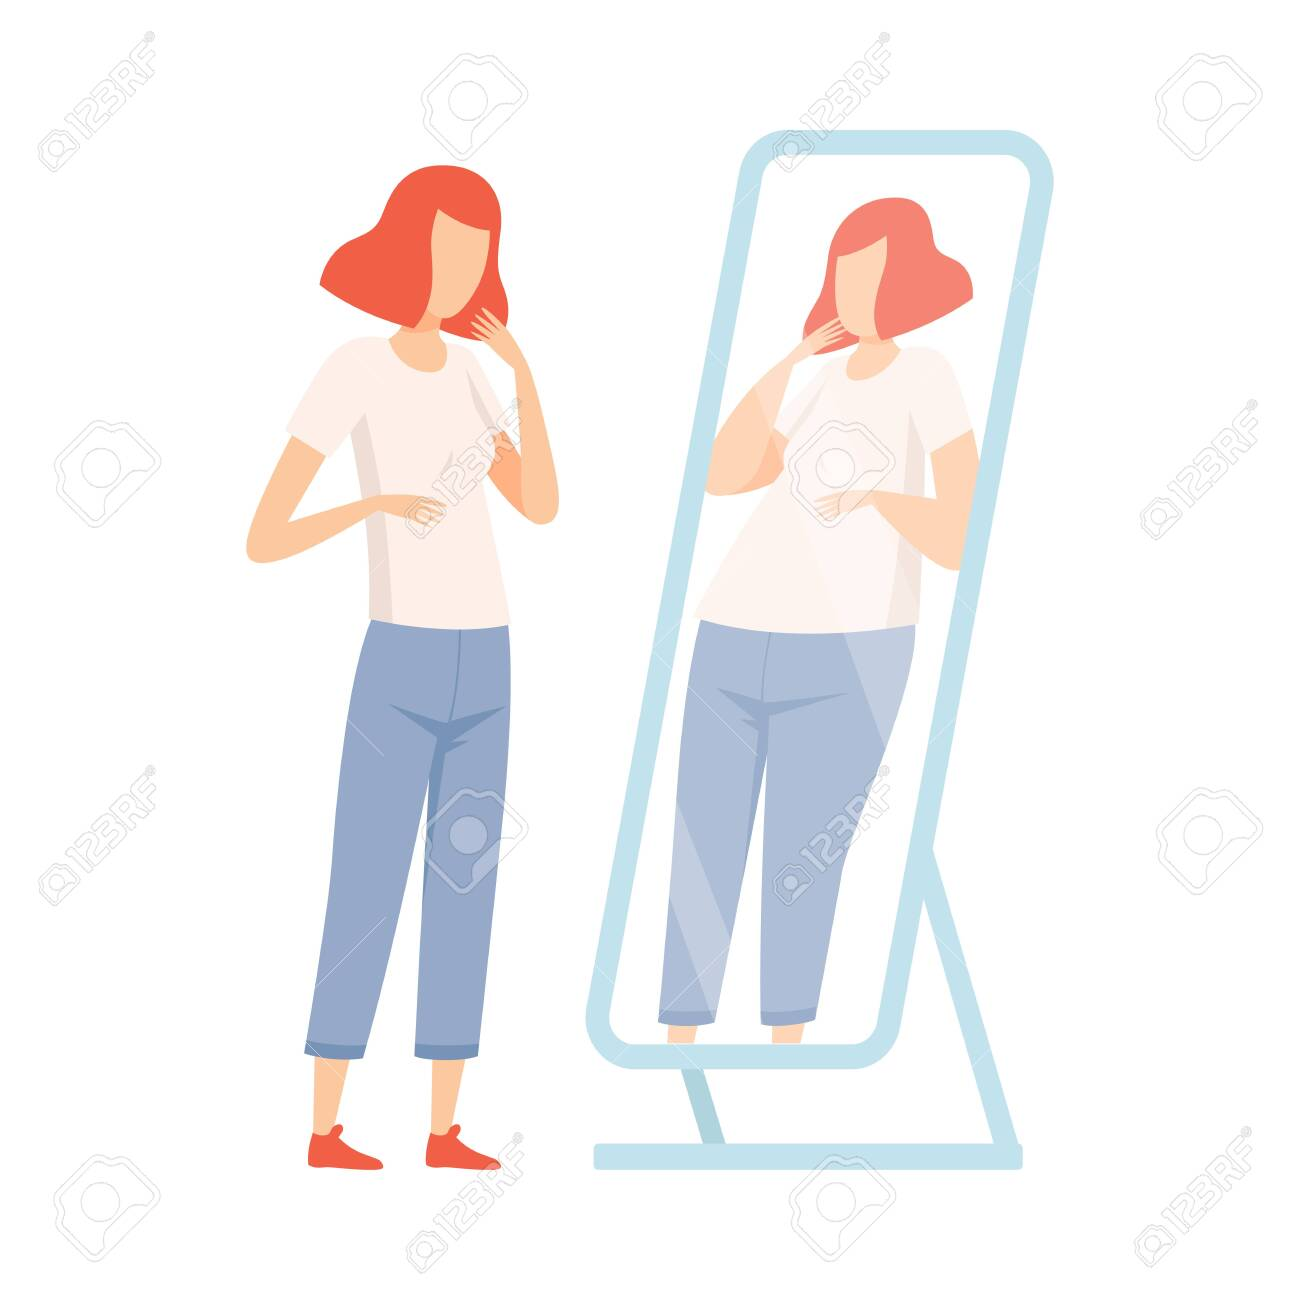 Slim Teen Girl Seeing Herself Fat in Mirror, Teenager Puberty Problem Vector Illustration on White Background. - 128166048